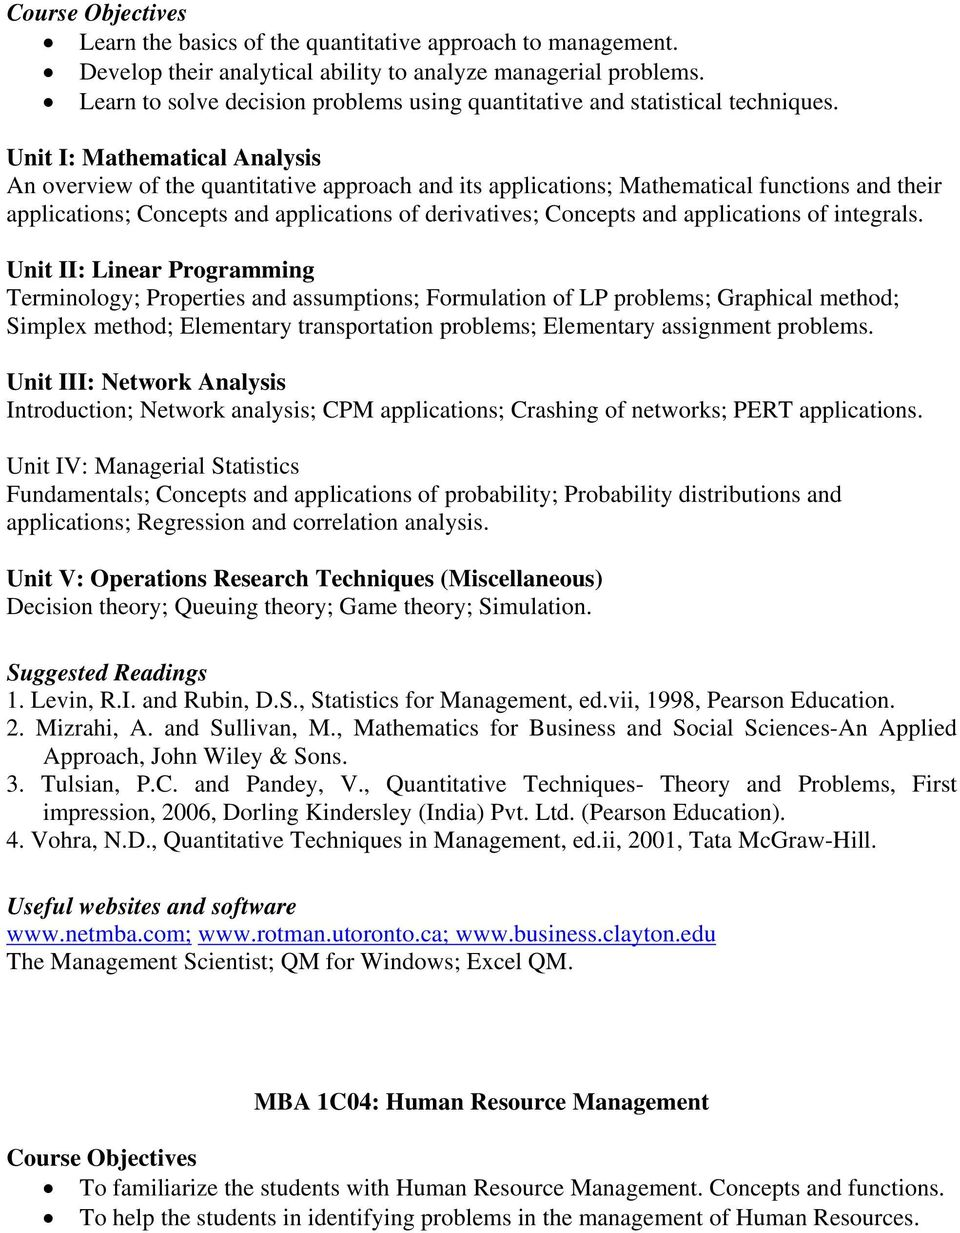 Unit I: Mathematical Analysis An overview of the quantitative approach and its applications; Mathematical functions and their applications; Concepts and applications of derivatives; Concepts and